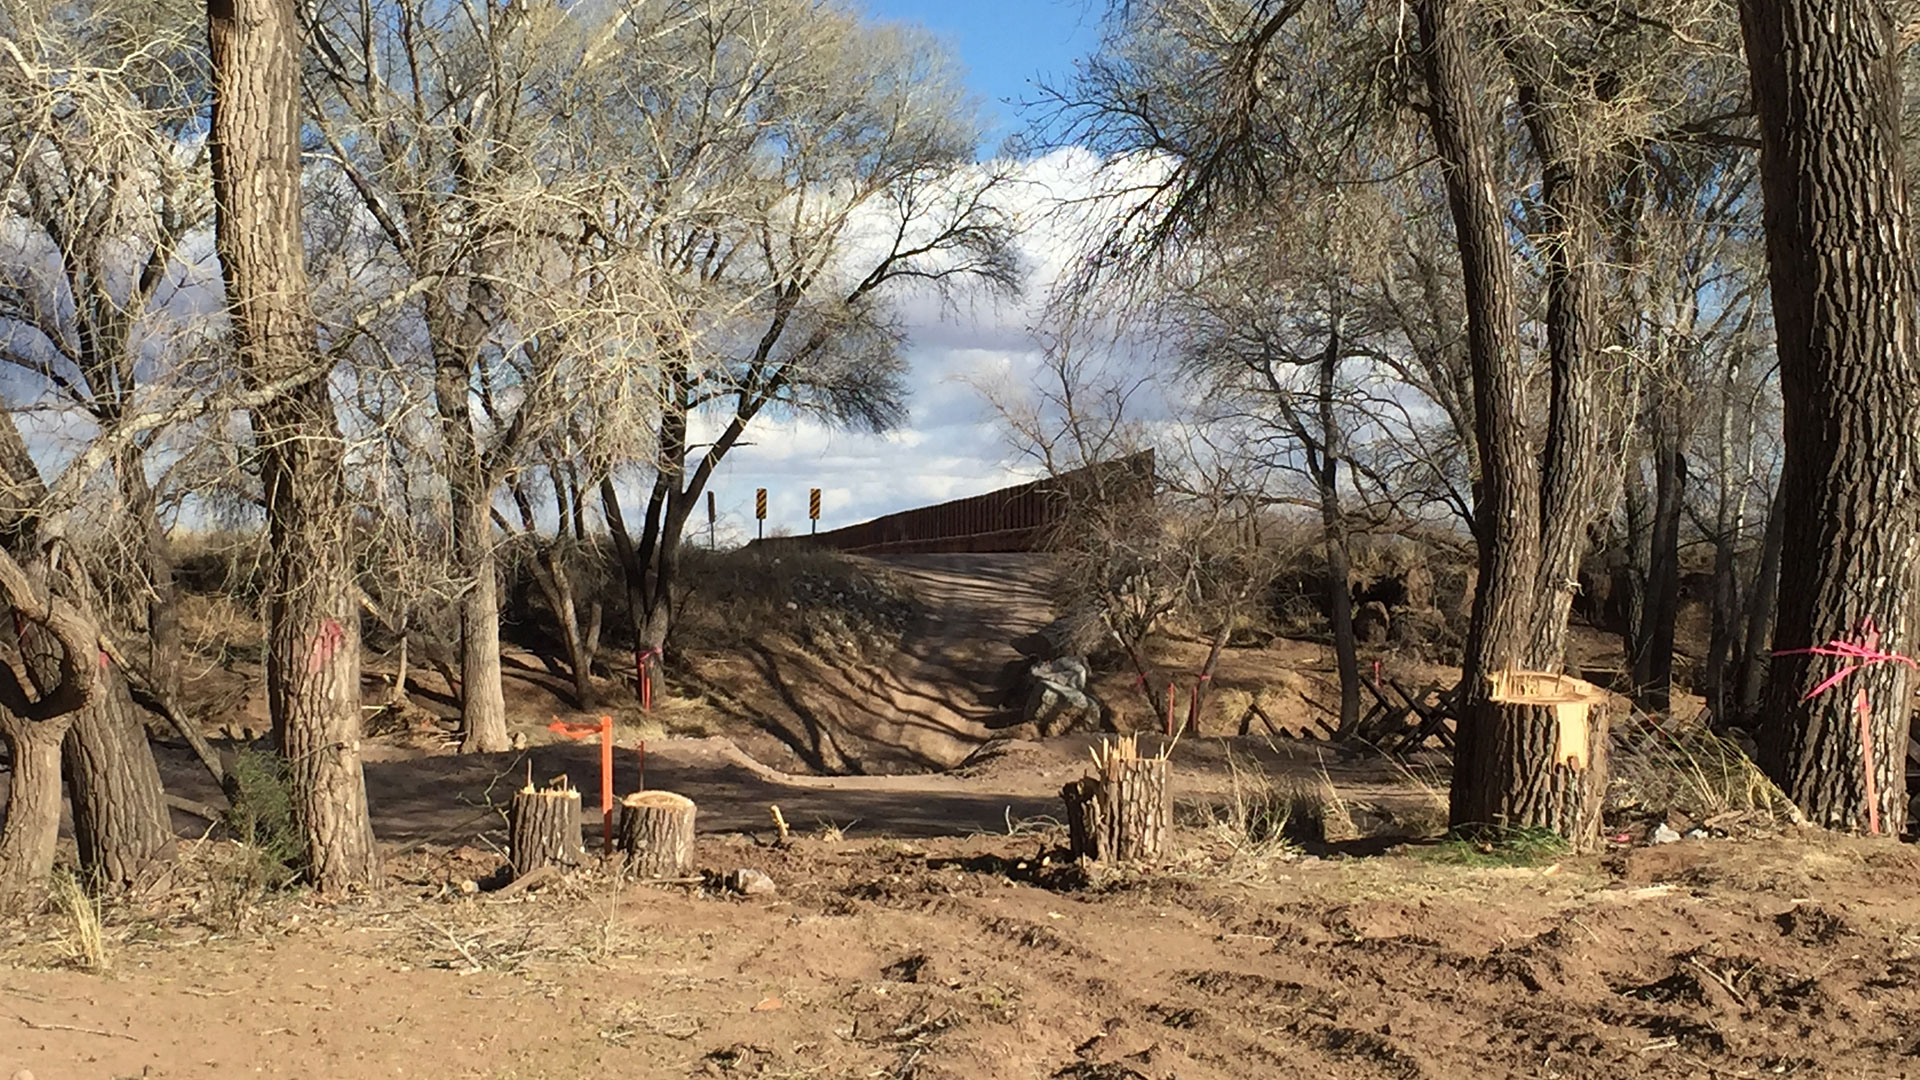 Cottonwoods along the San Pedro River channel cut down for pending border wall construction across the river.